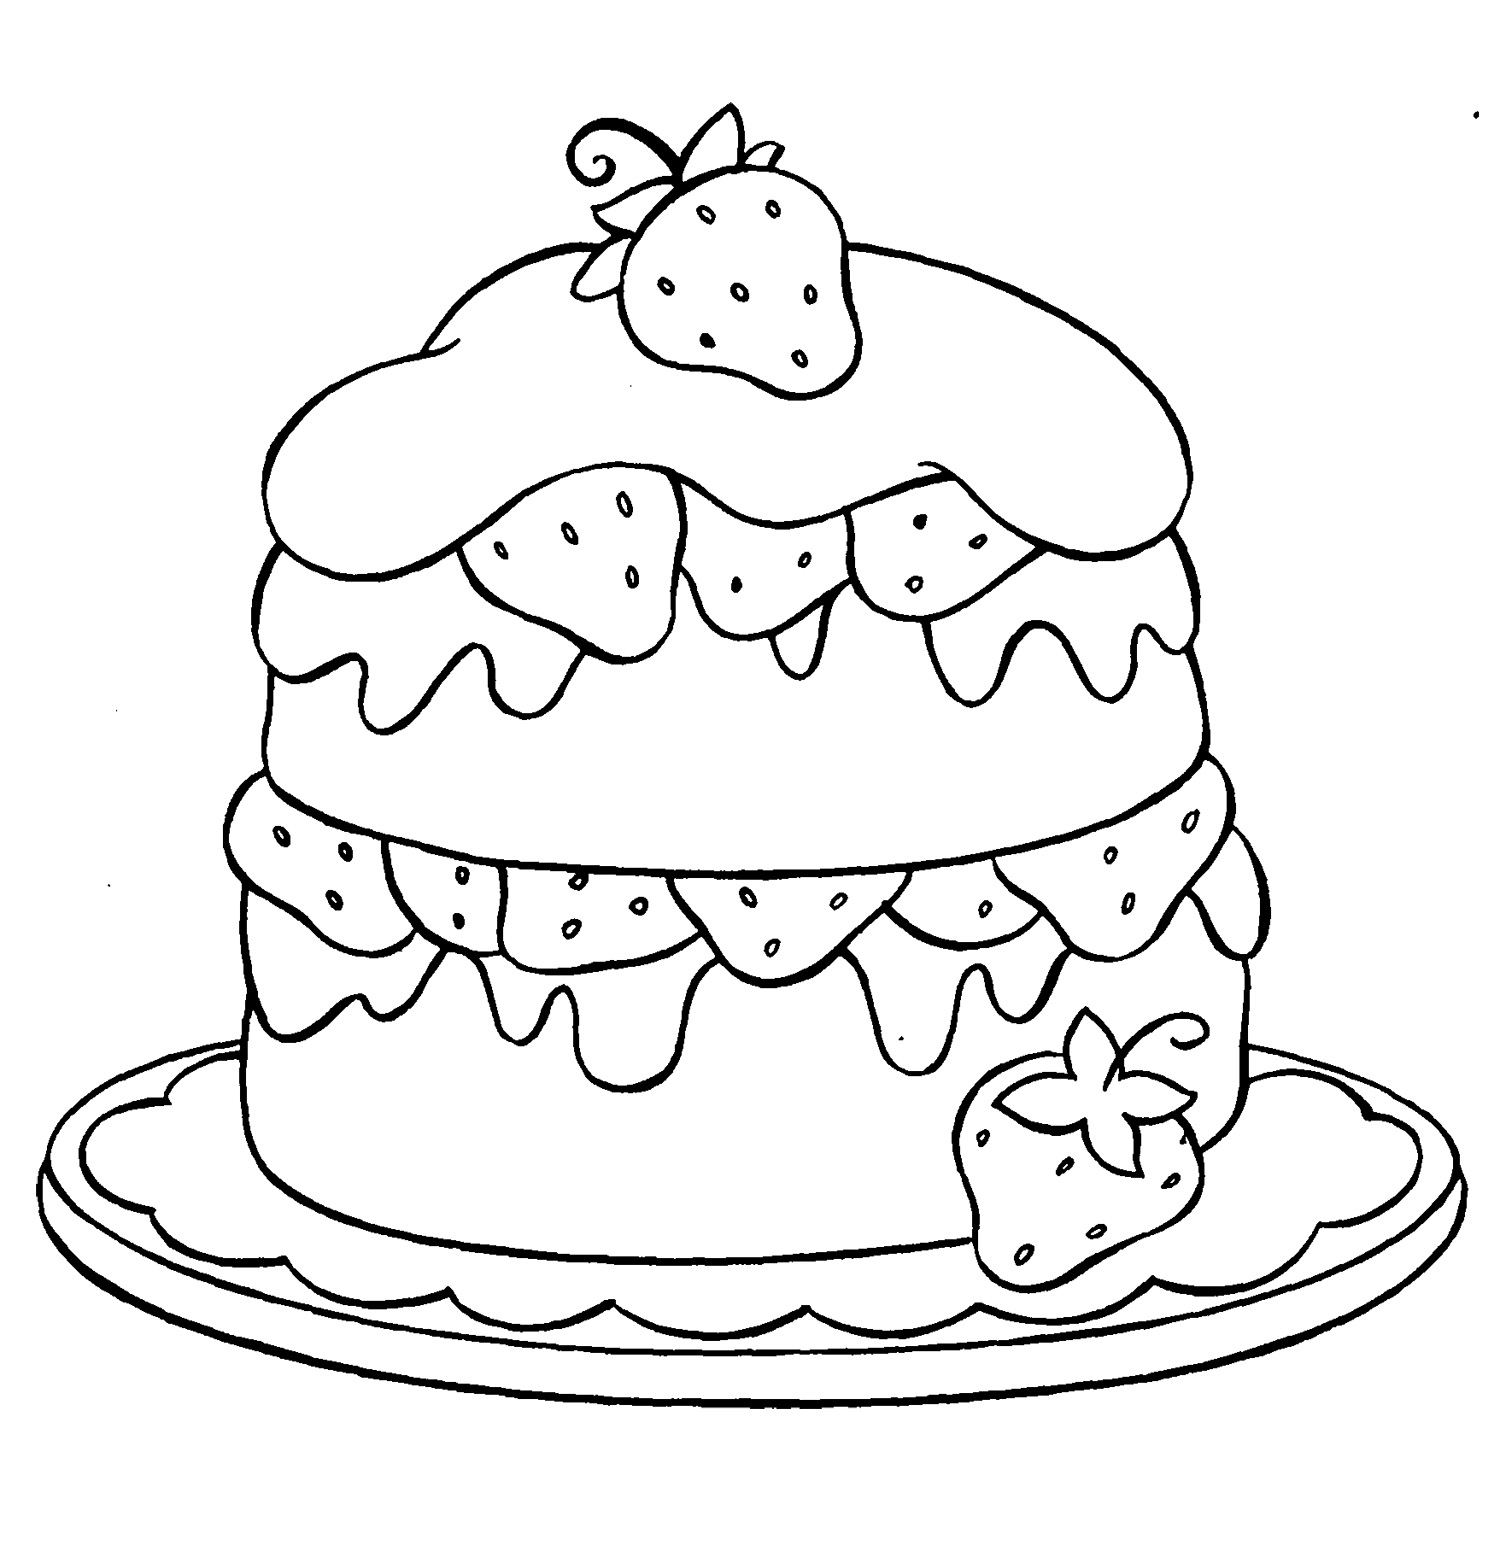 easy cupcake coloring pages easy cupcake coloring pages cupcake coloring easy pages